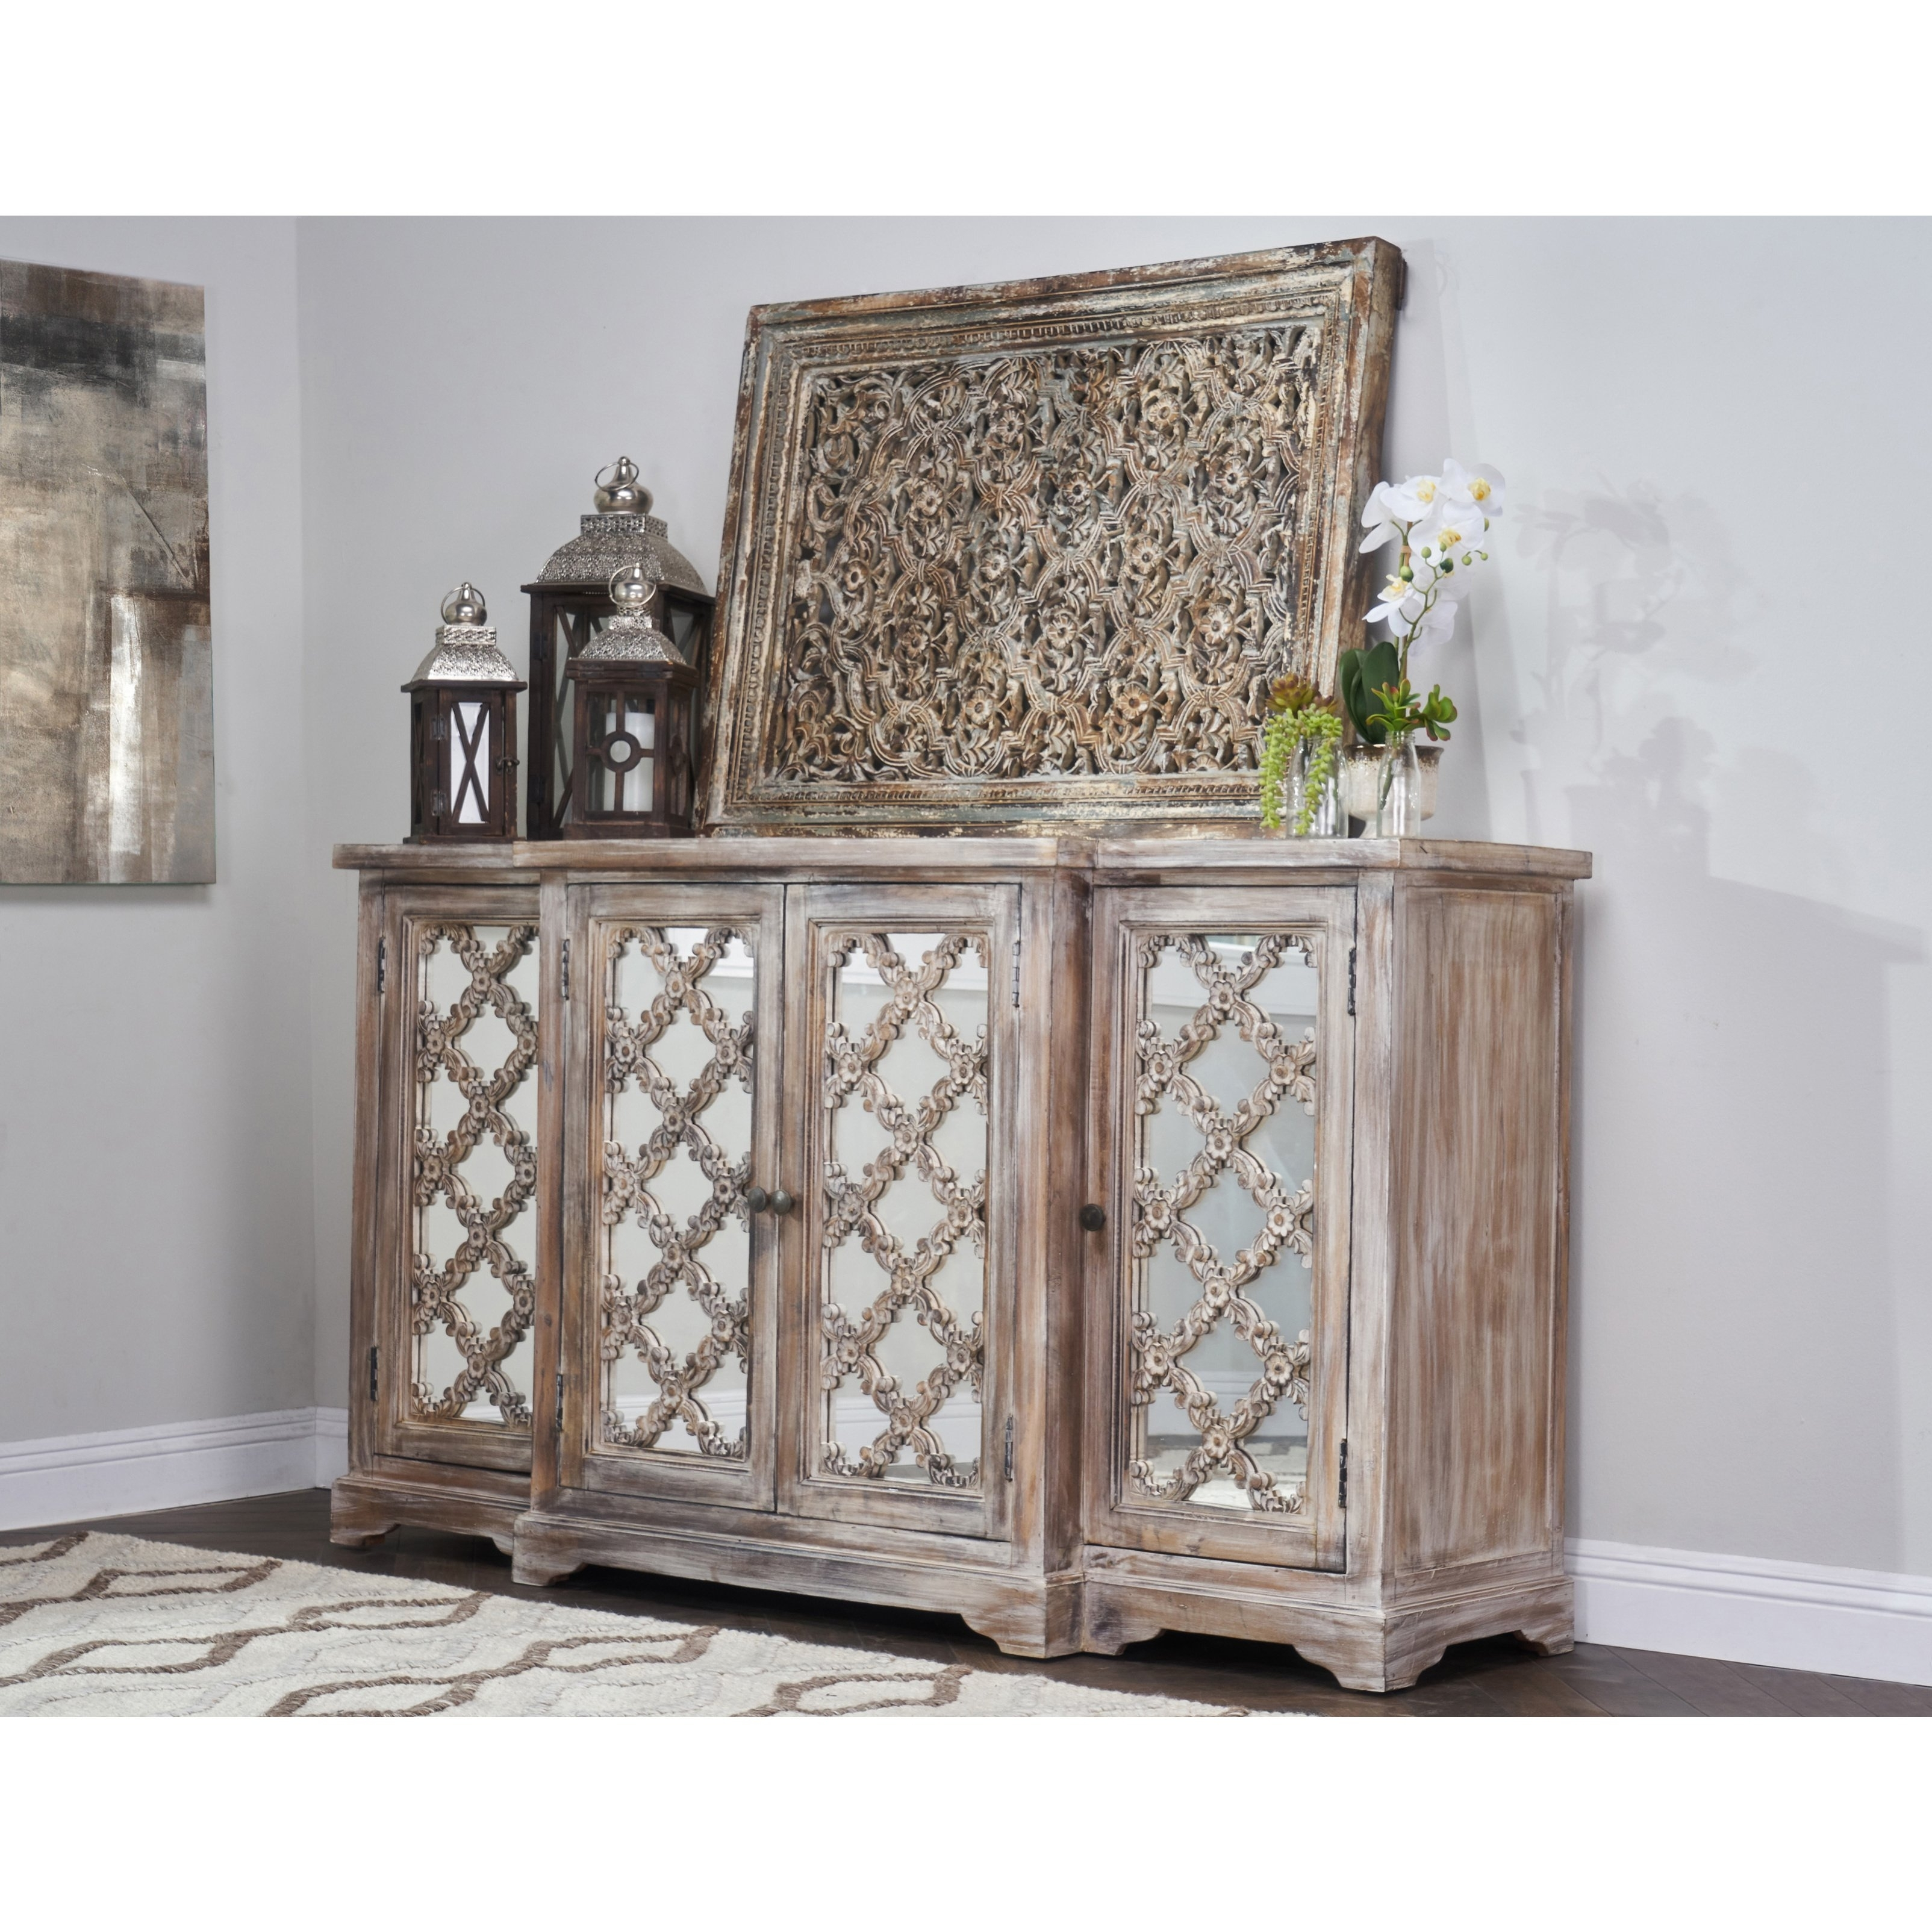 Shop Franklin Rustic Brown Wood Mirrored 71 Inch Sideboardkosas Inside Most Current Aged Mirrored 2 Door Sideboards (#19 of 20)